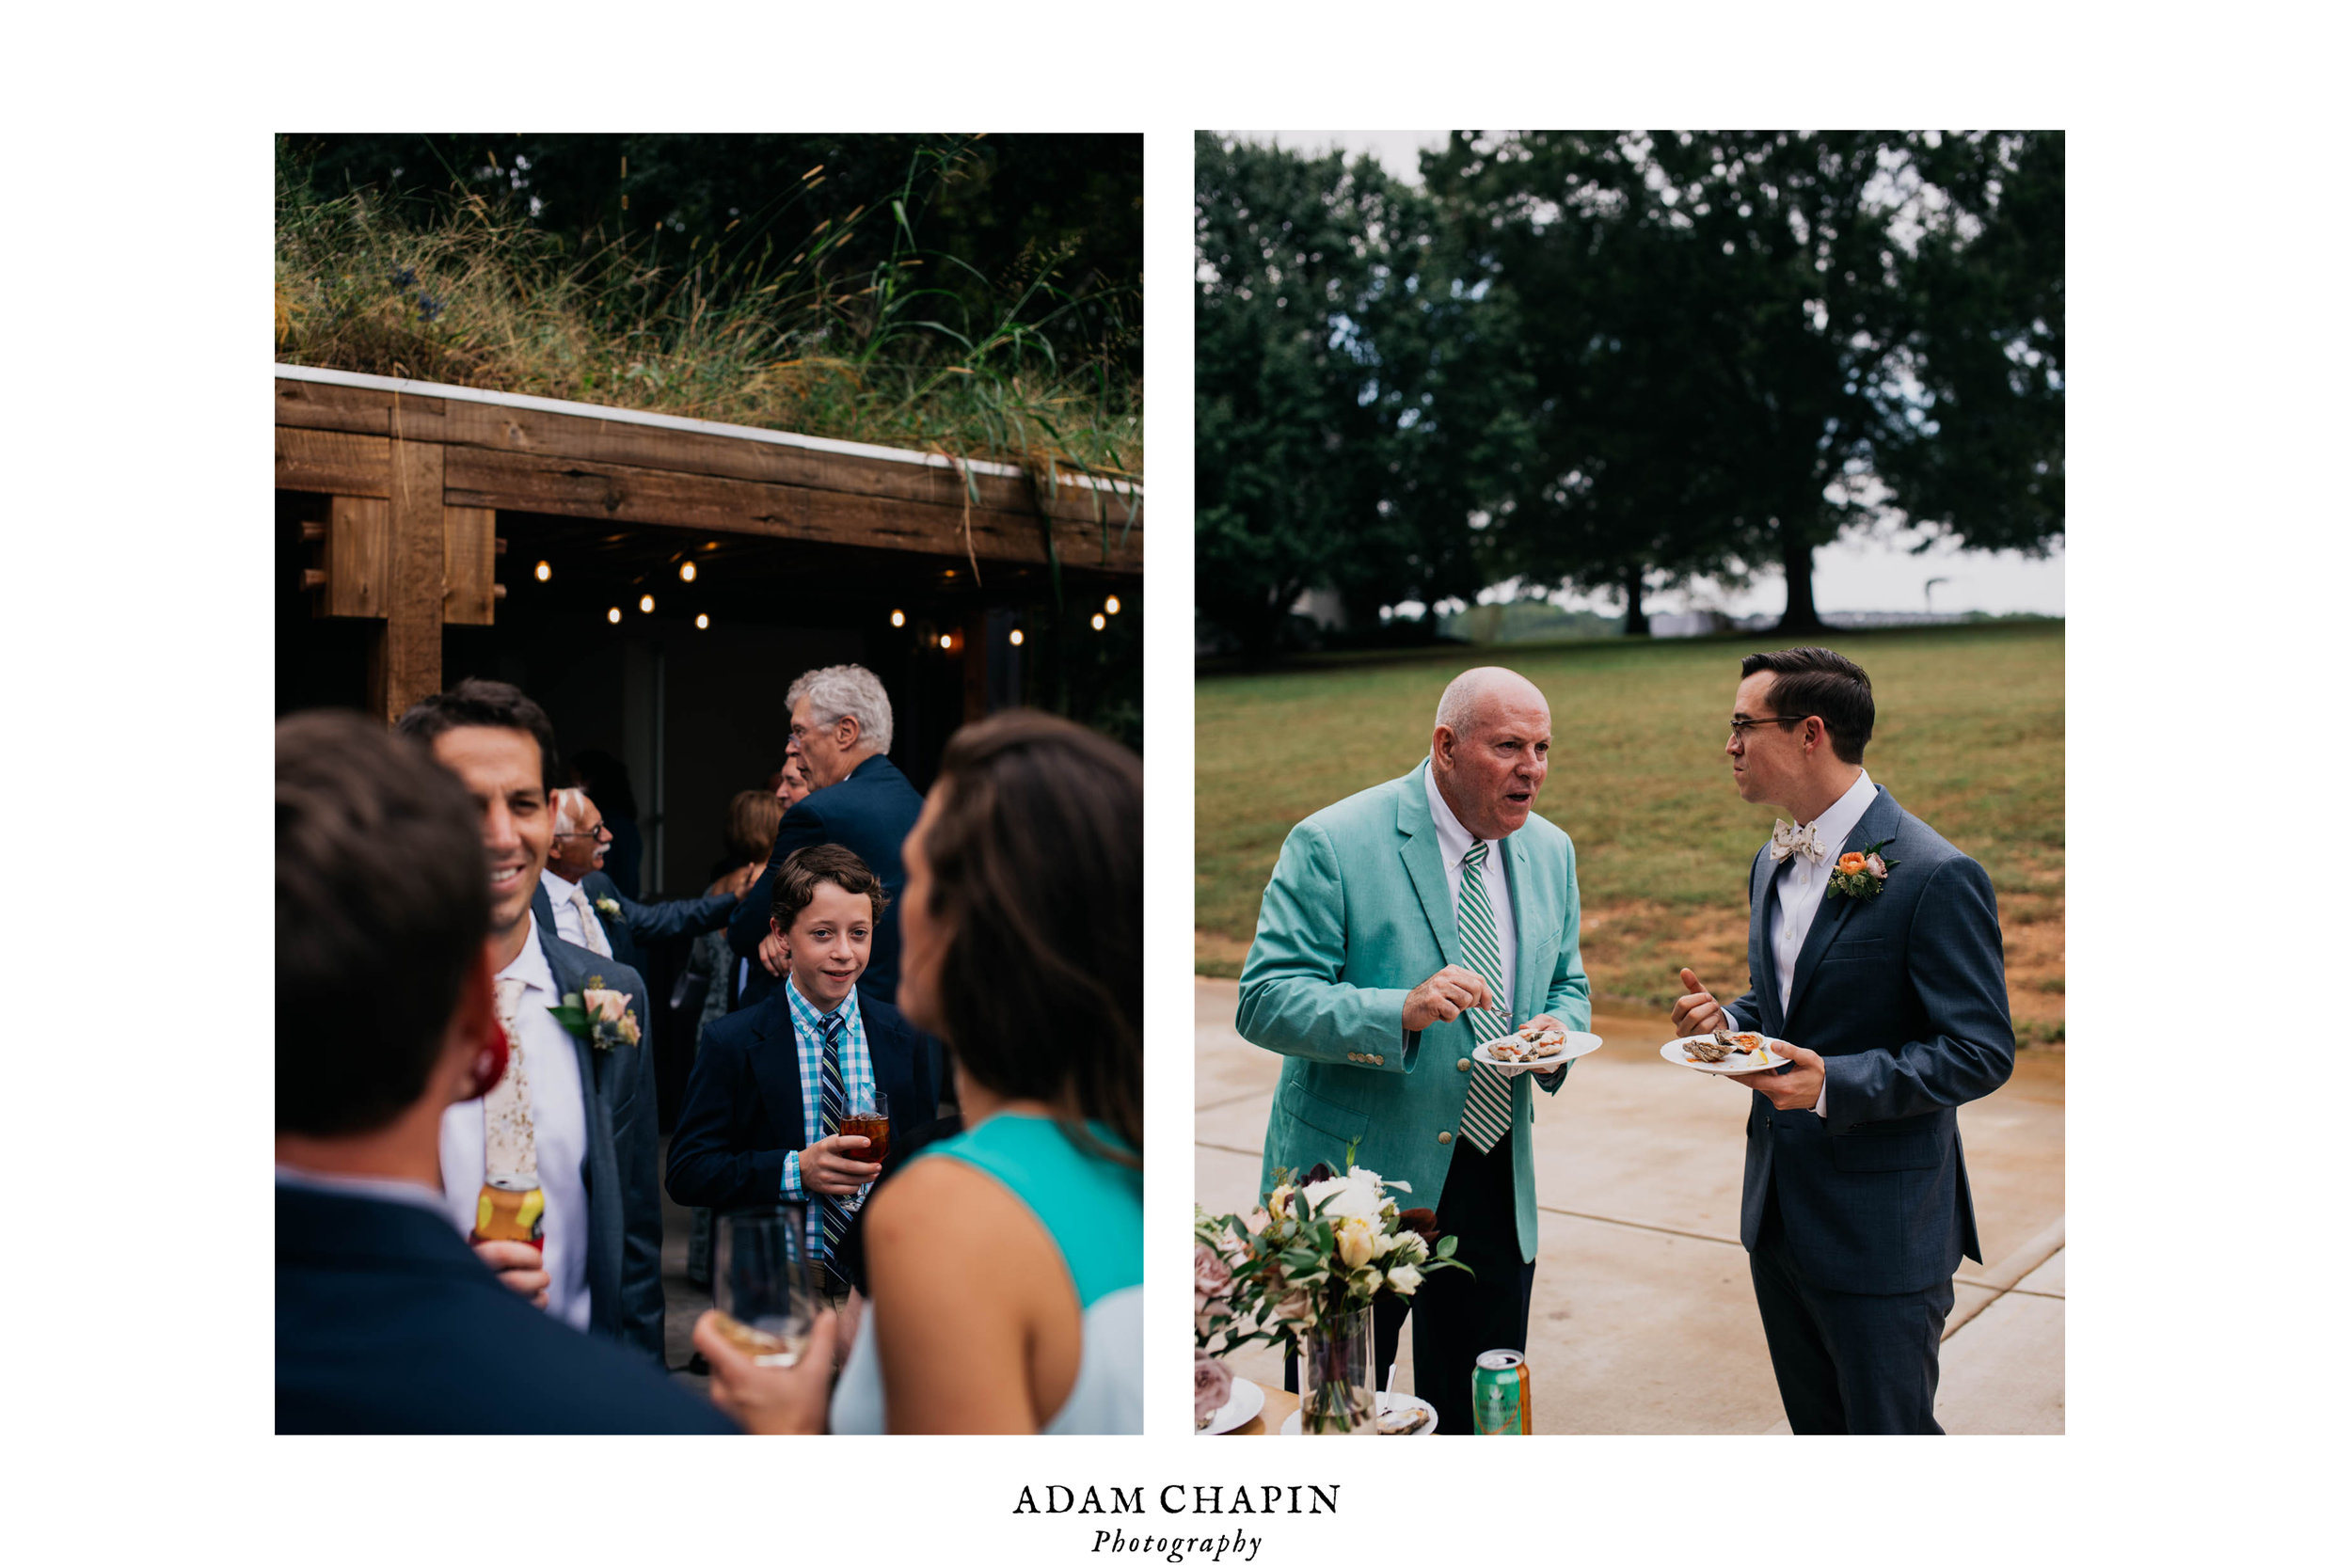 a couple of candid photos of wedding guests socializing during the cocktail hour of the wedding